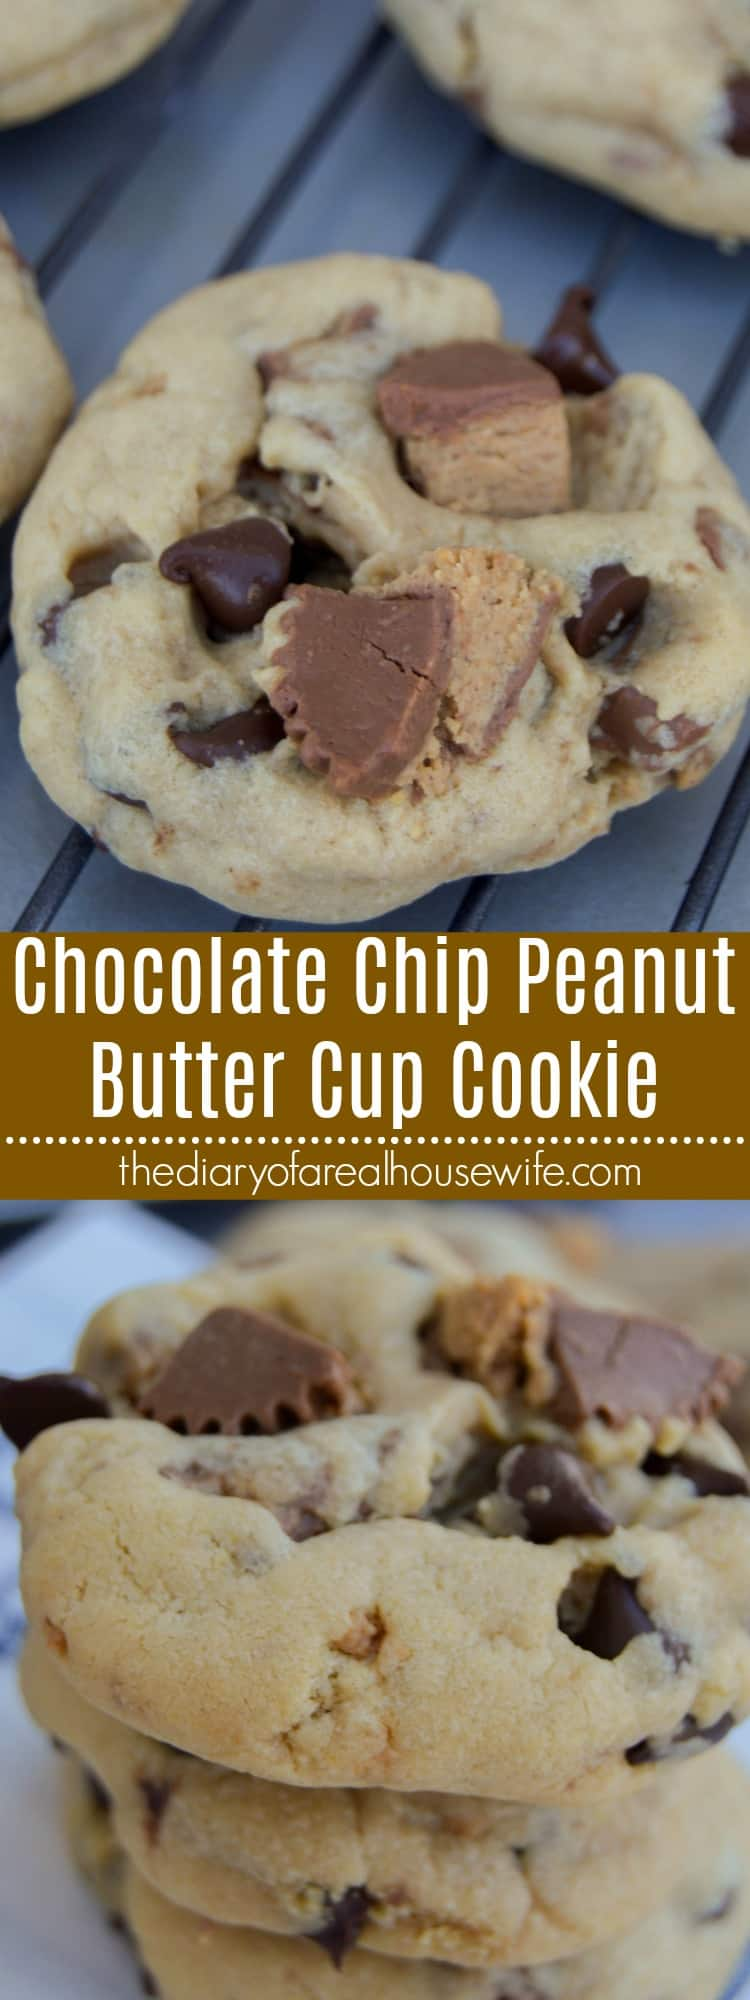 Chocolate Chip Peanut Butter Cup Cookie